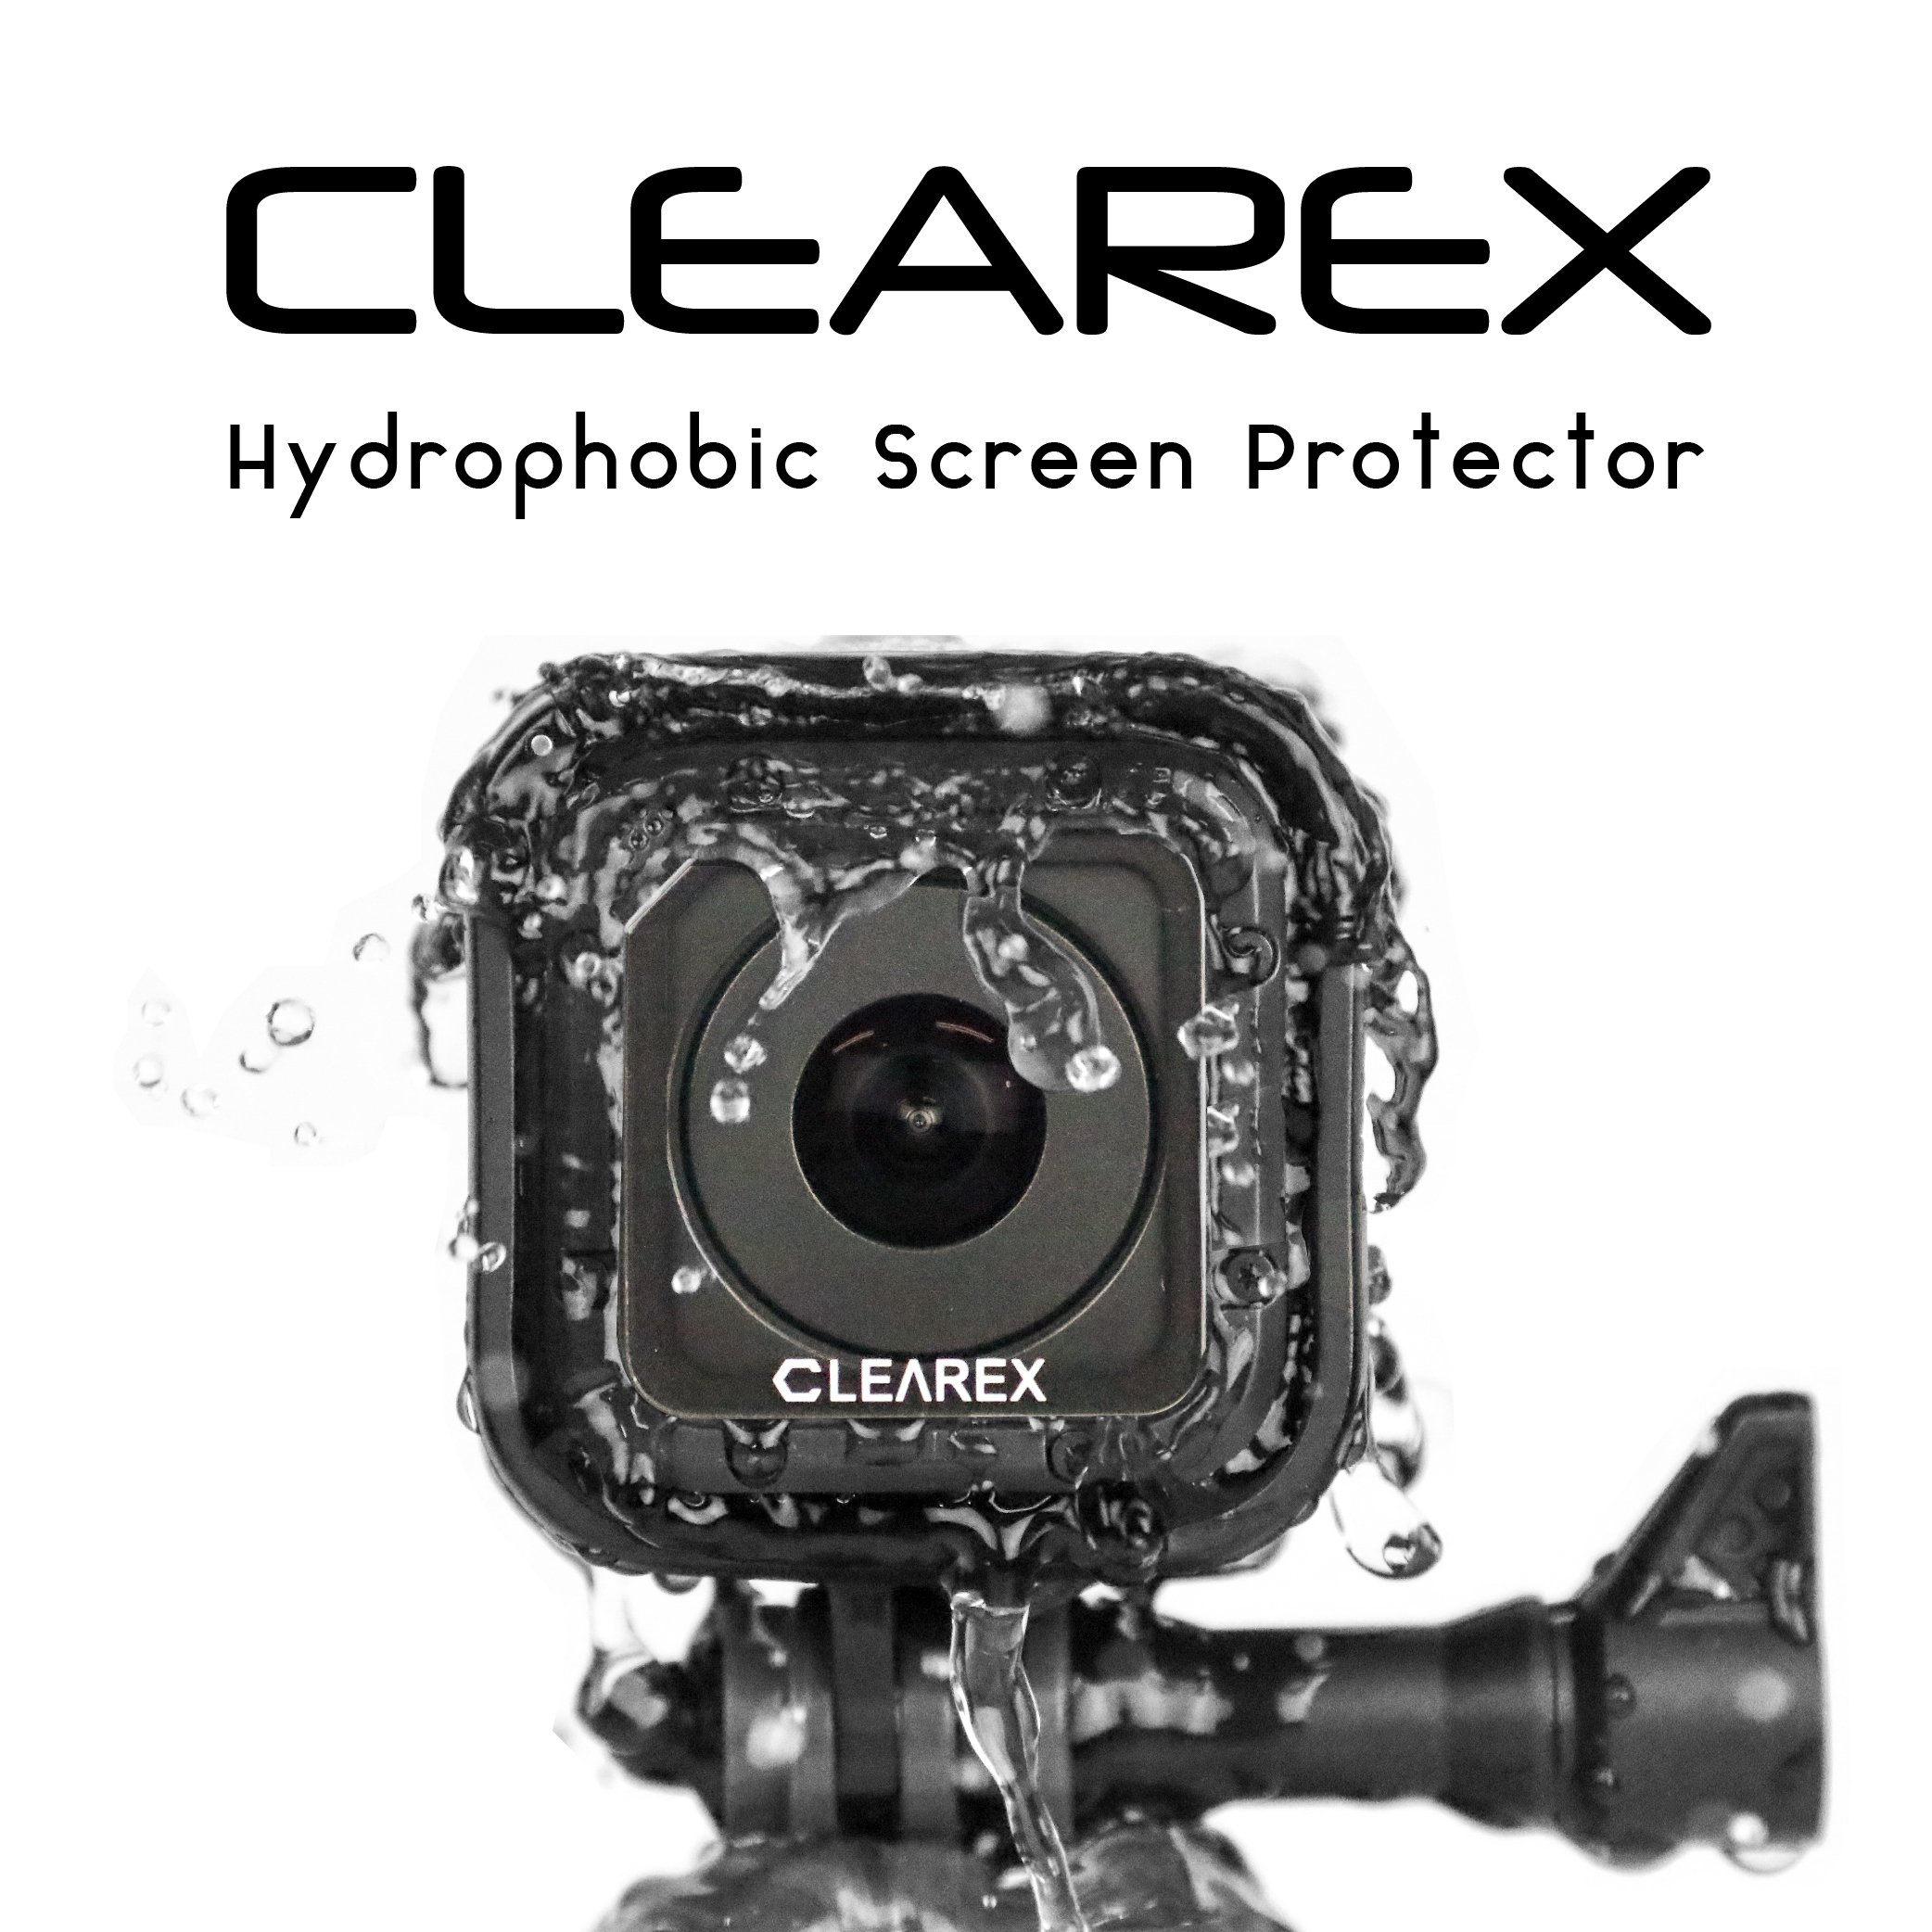 Hydrophobic Screen Protector for GoPro Hero Session 4 & 5 | Clearex - Water Repellent, GoPro Lens, Ultra-Clear Tempered Glass, Anti-scratch | Capture Clearly by AXTION by Axion